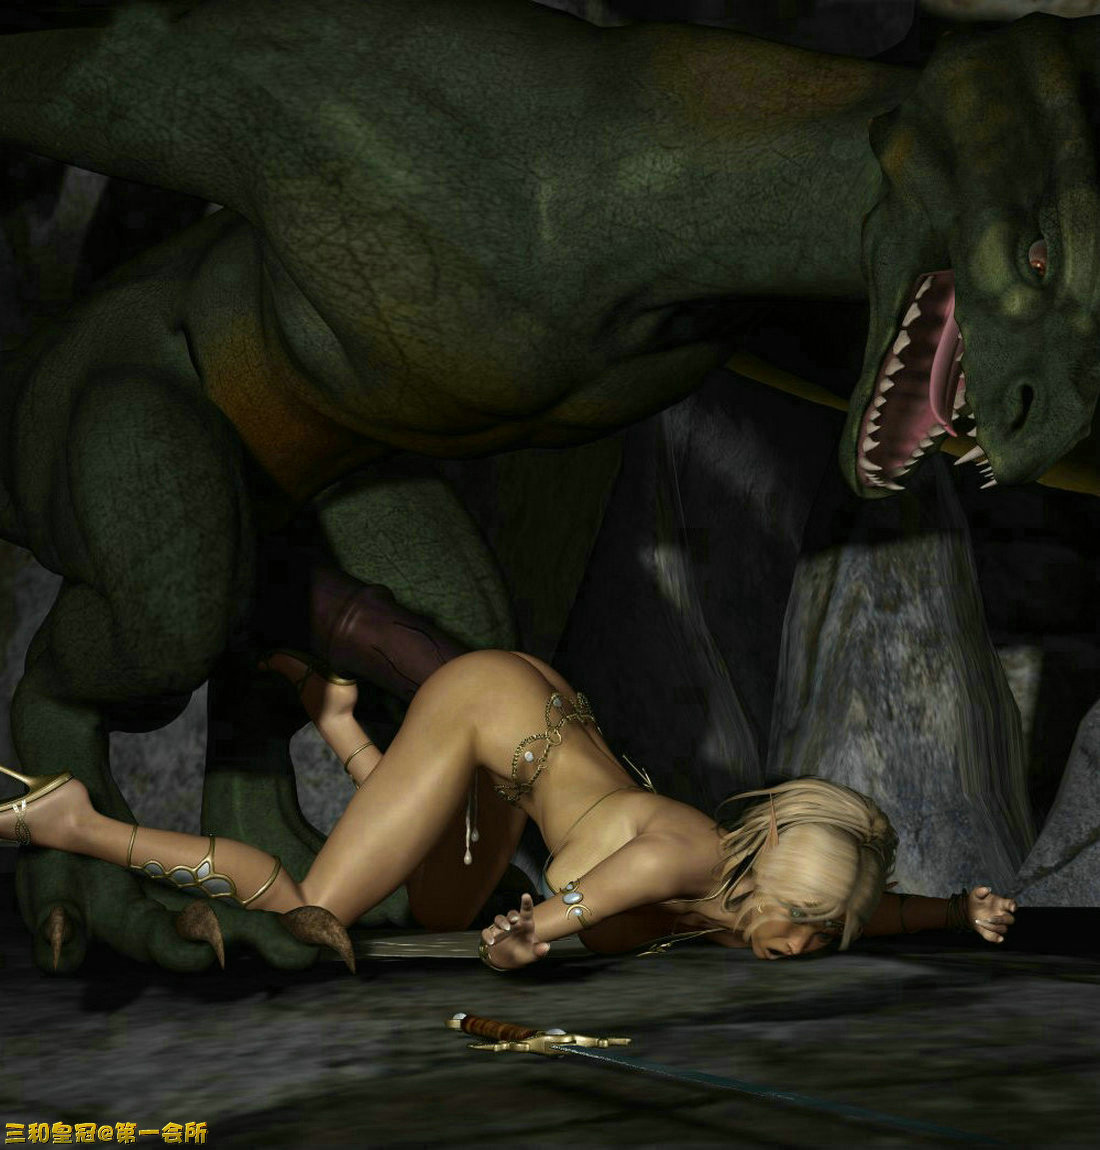 Dragons fuck 3d girls adult videos